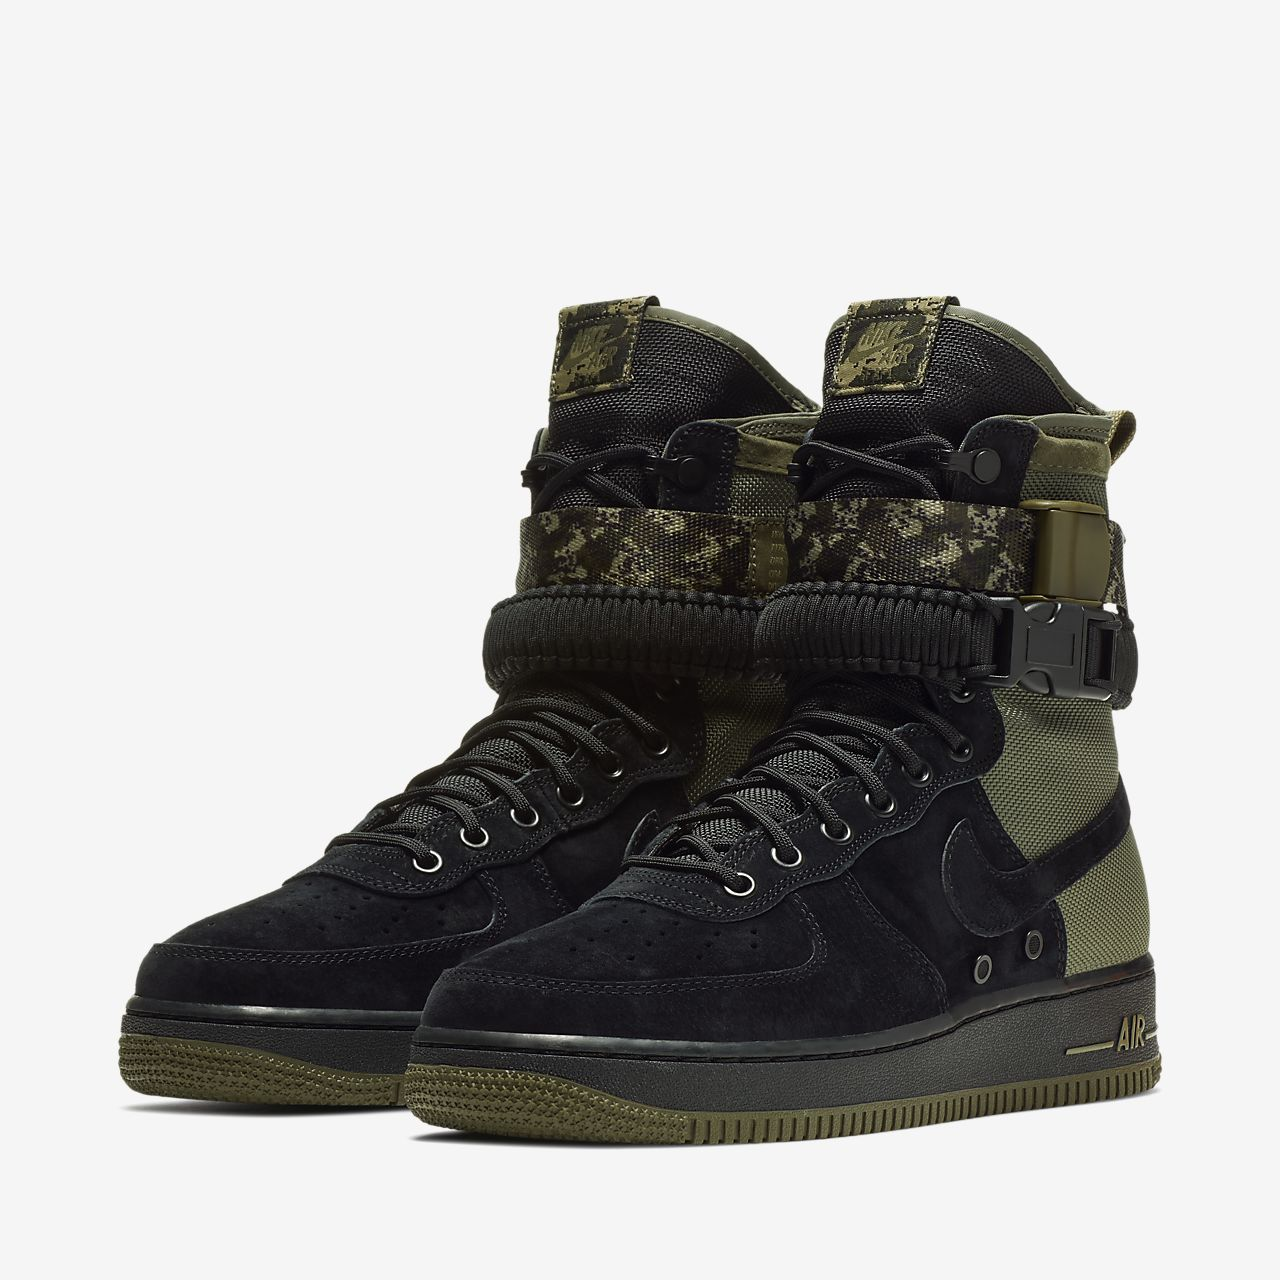 Nike SF Air Force 1 Men's Lifestyle Boots Black/Brown aP8608Q